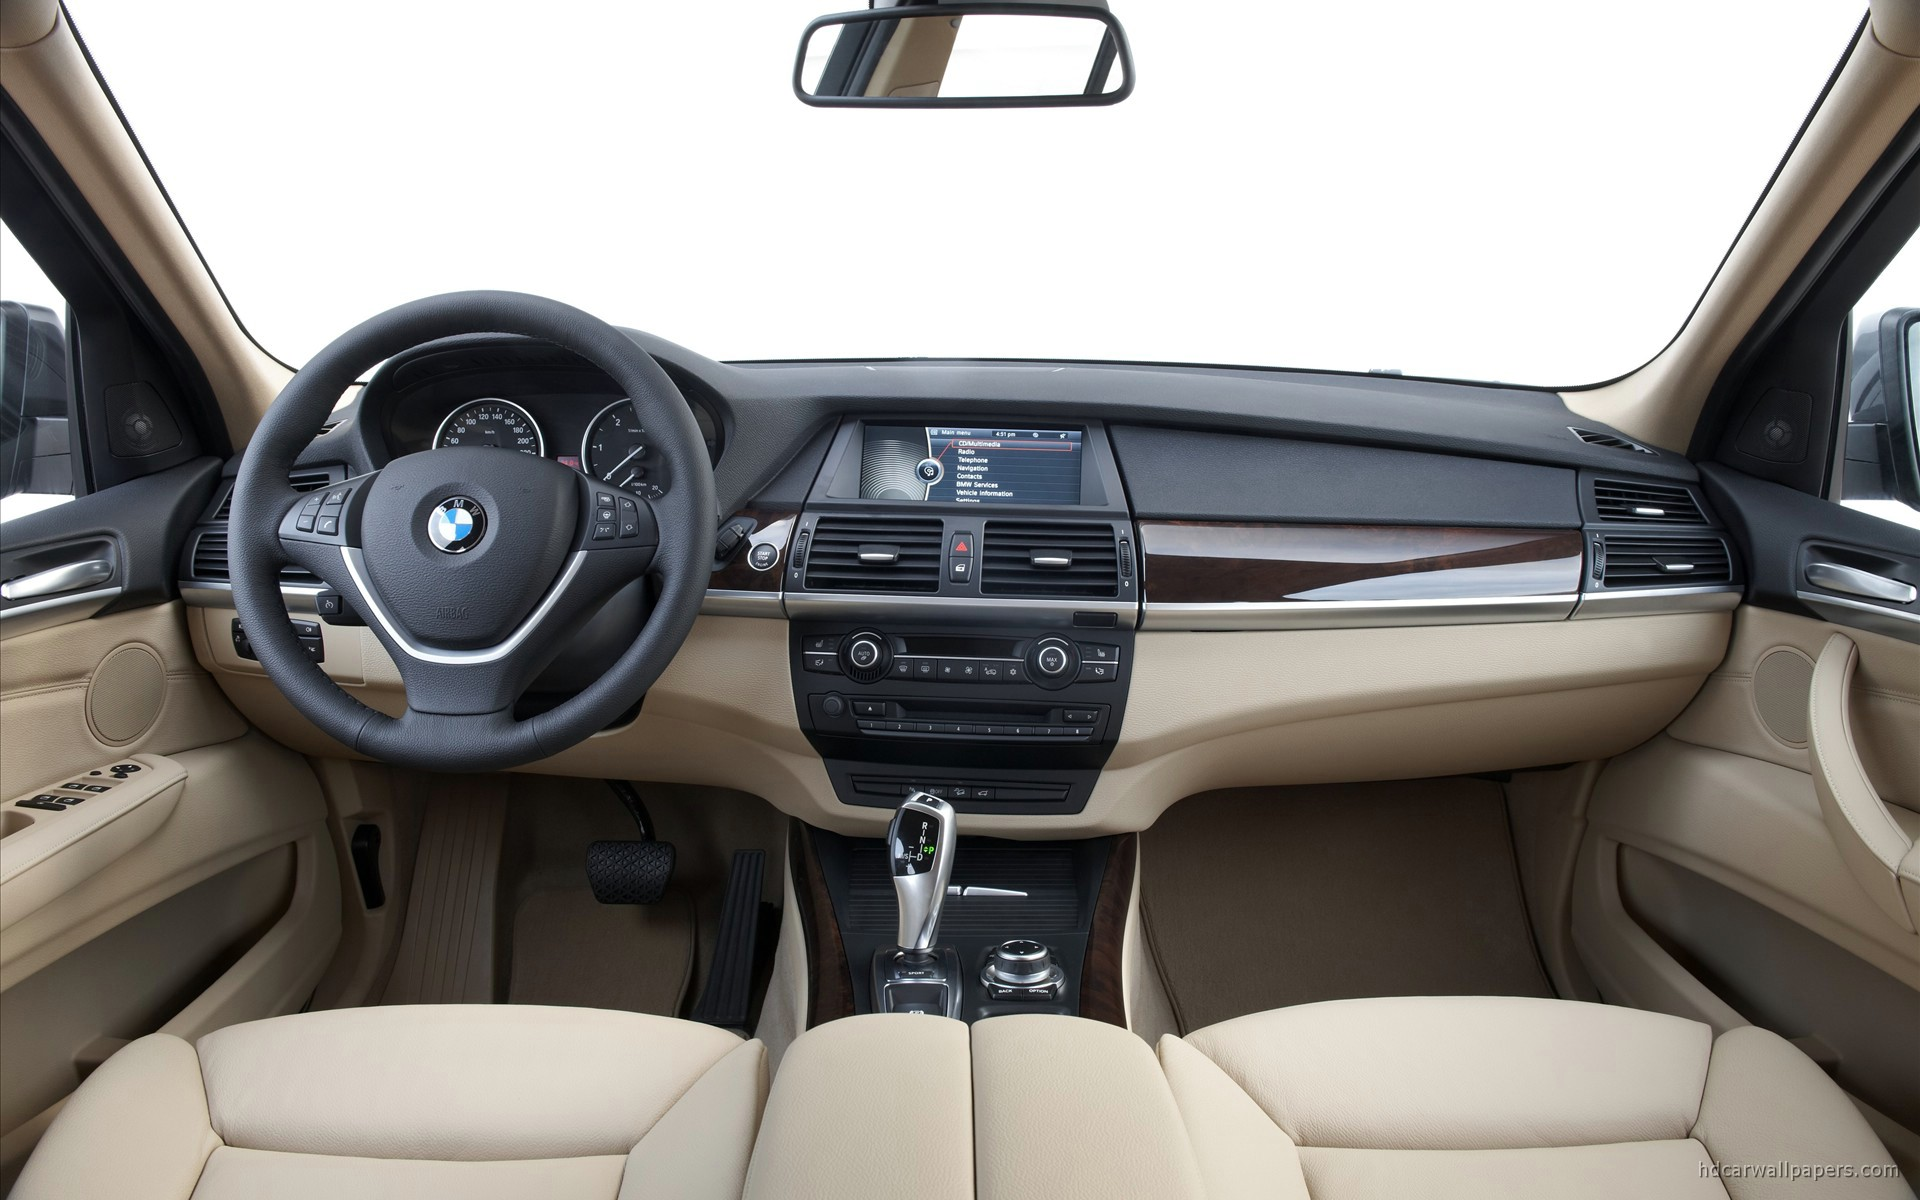 2011 bmw x5 interior wallpaper hd car wallpapers id 303 for Bmw x5 interior